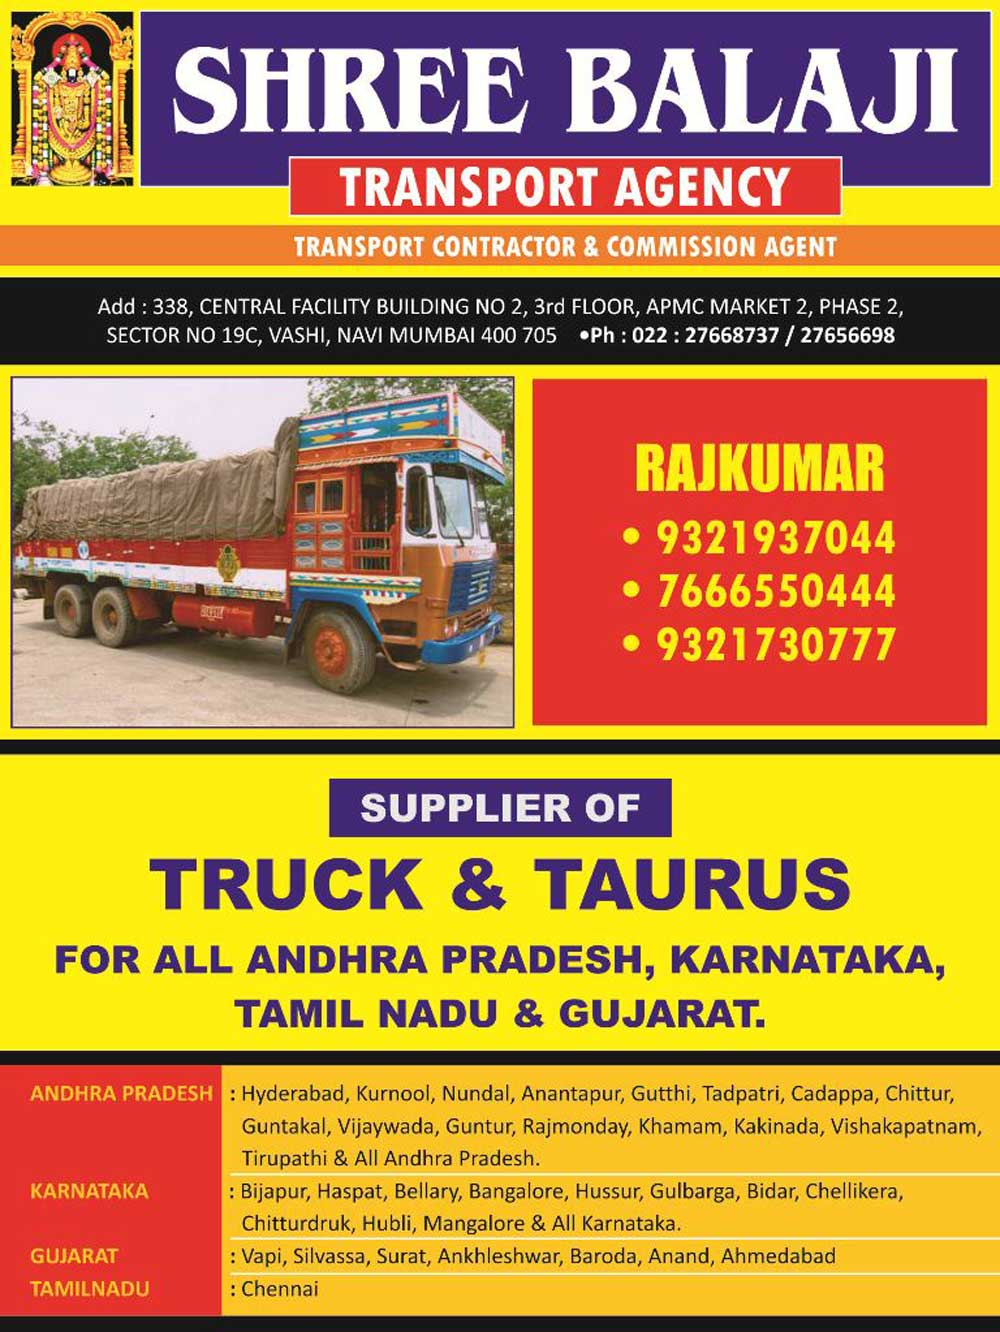 Shree Balaji Transport Agency